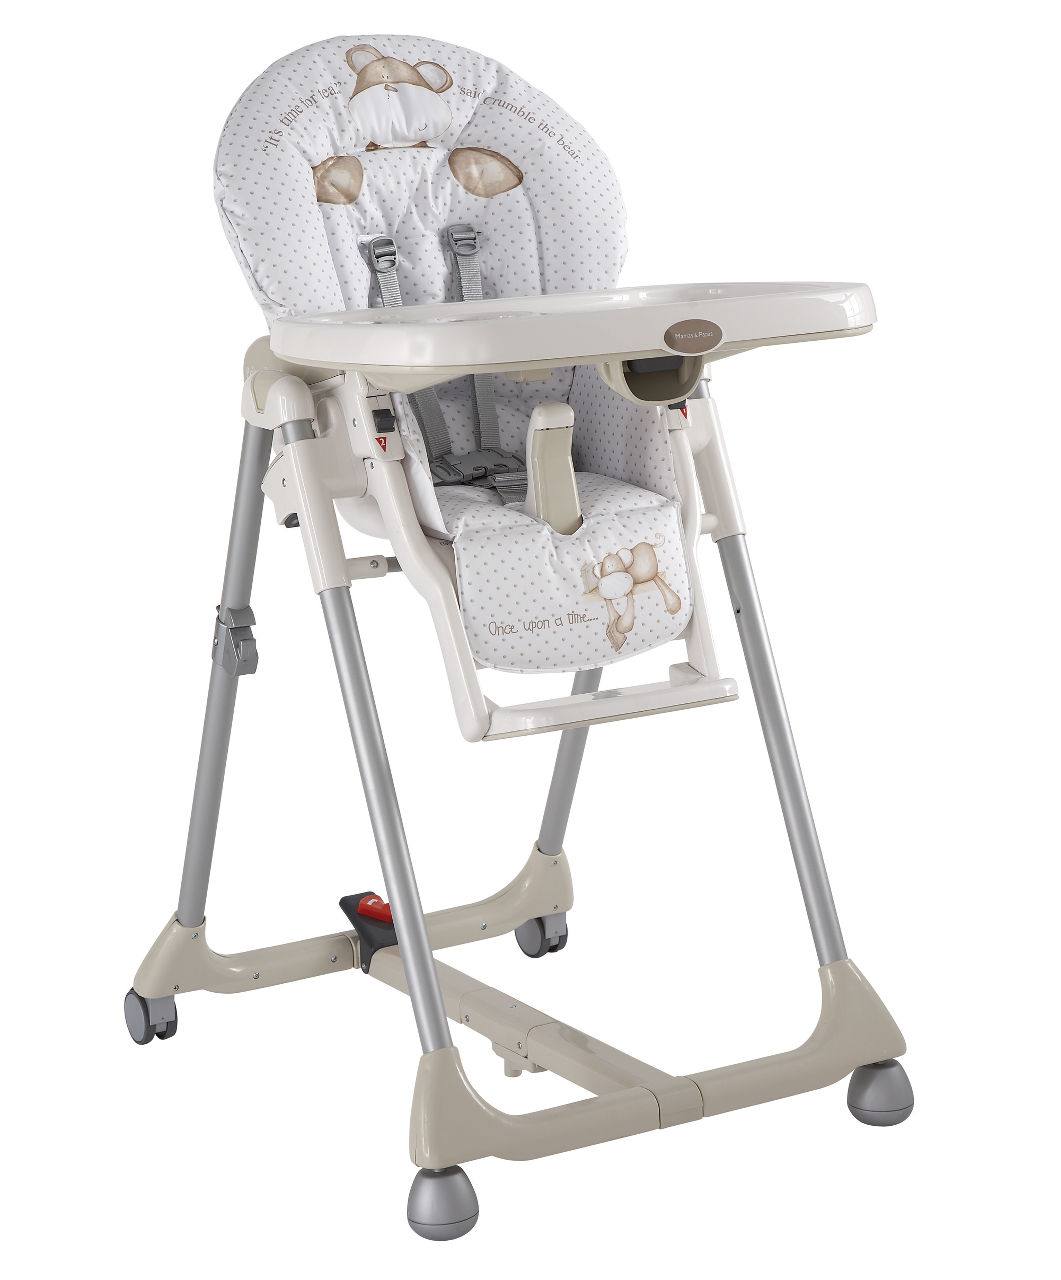 Swell Prima Pappa Highchair Once Upon A Time View All Baby Bralicious Painted Fabric Chair Ideas Braliciousco